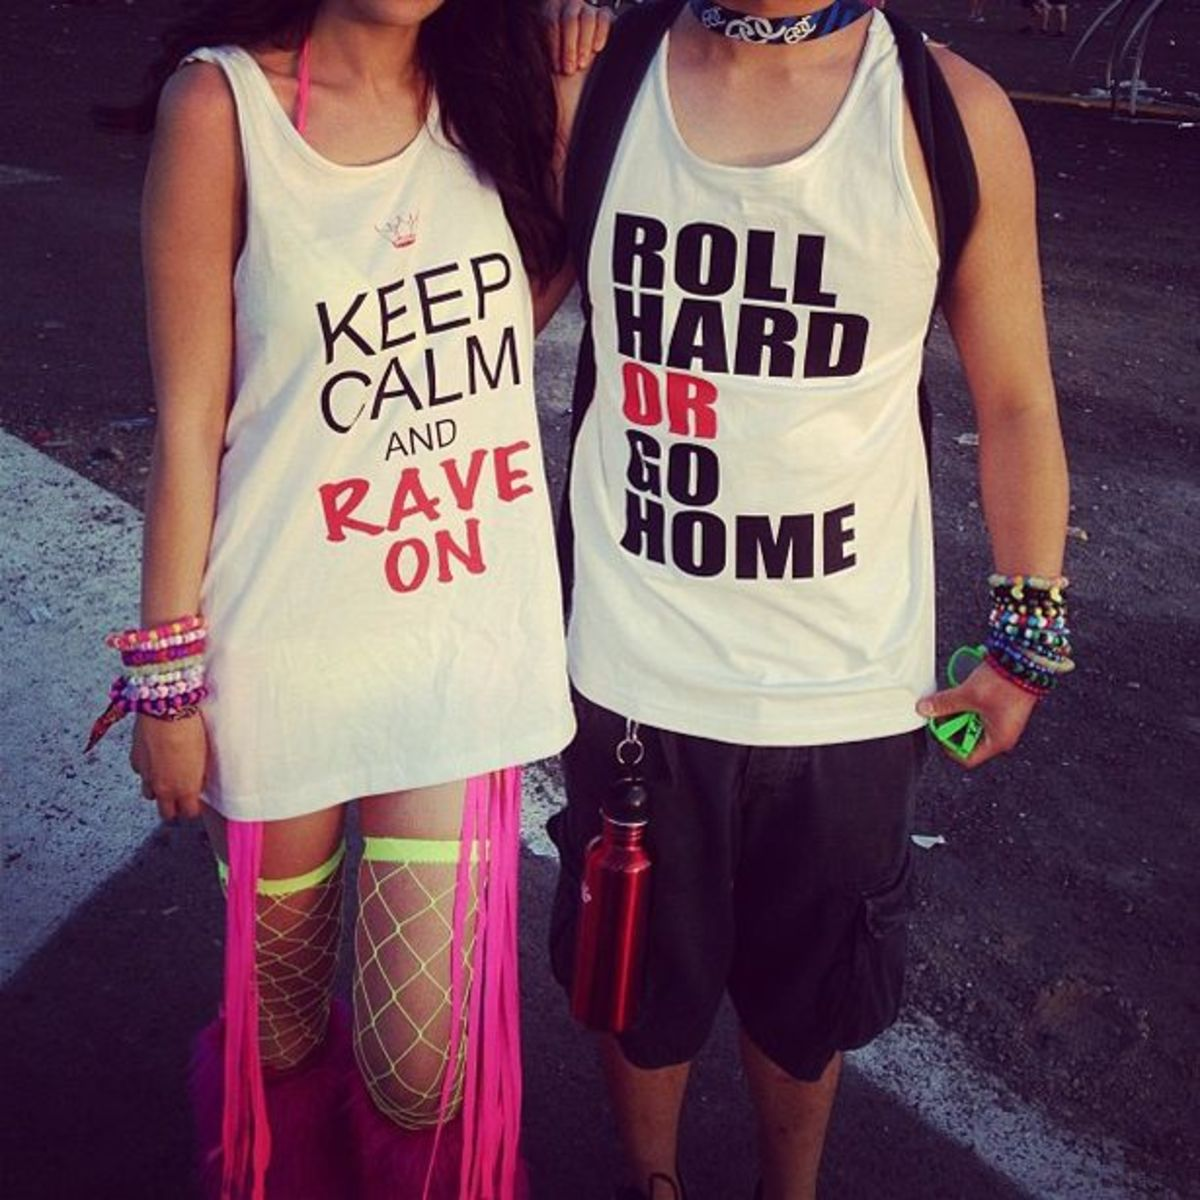 EDM Culture: The 10 Worst T-shirts In Electronic Dance Music